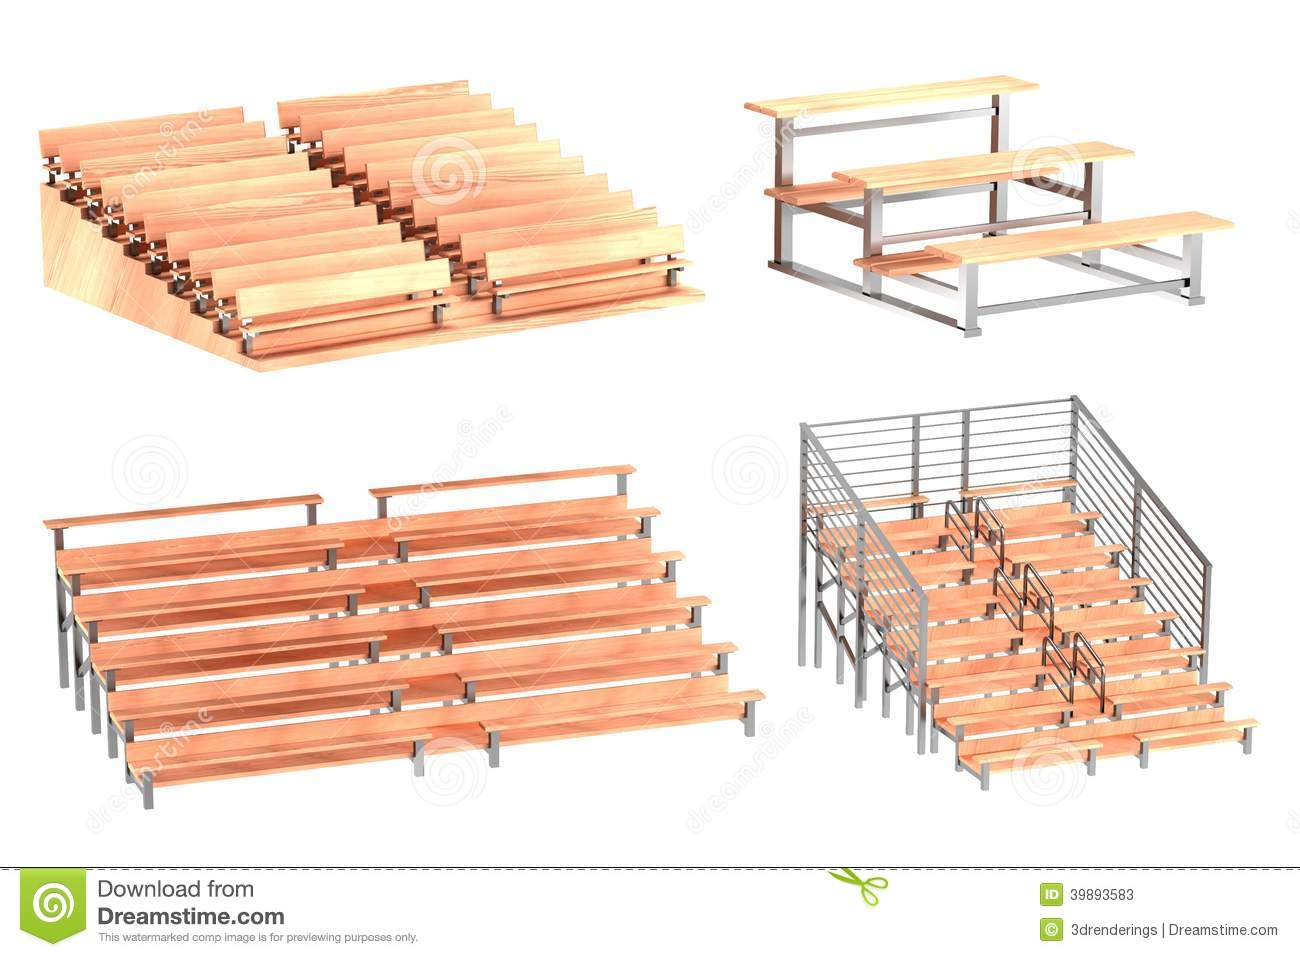 3d render of stadium benches stock illustration - image: 39893583